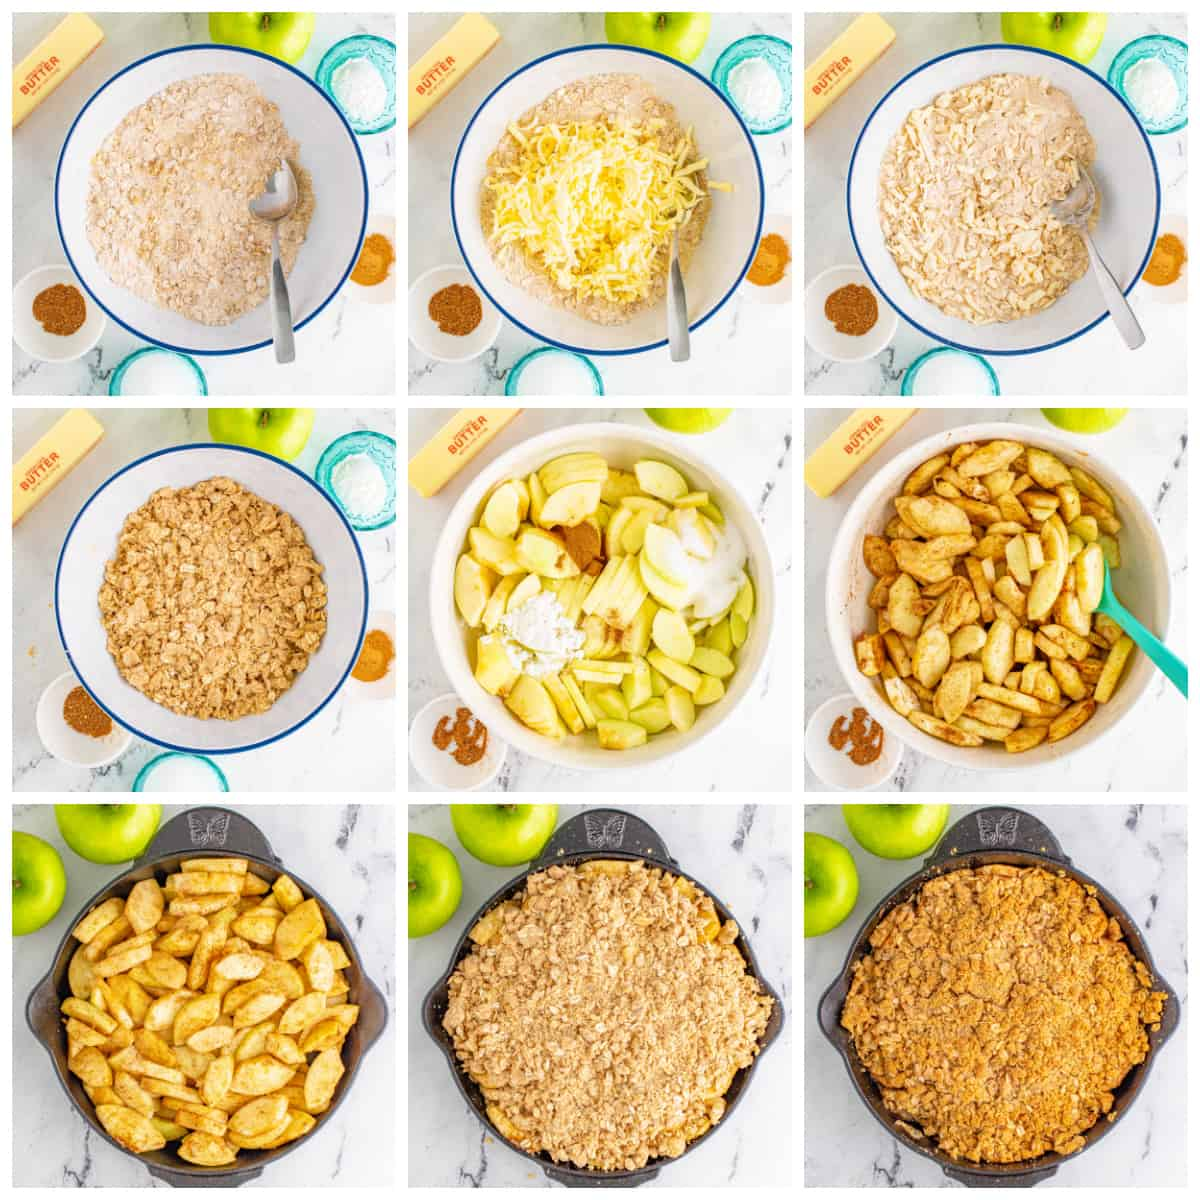 Step by step photos on how to make Easy Apple Crisp.